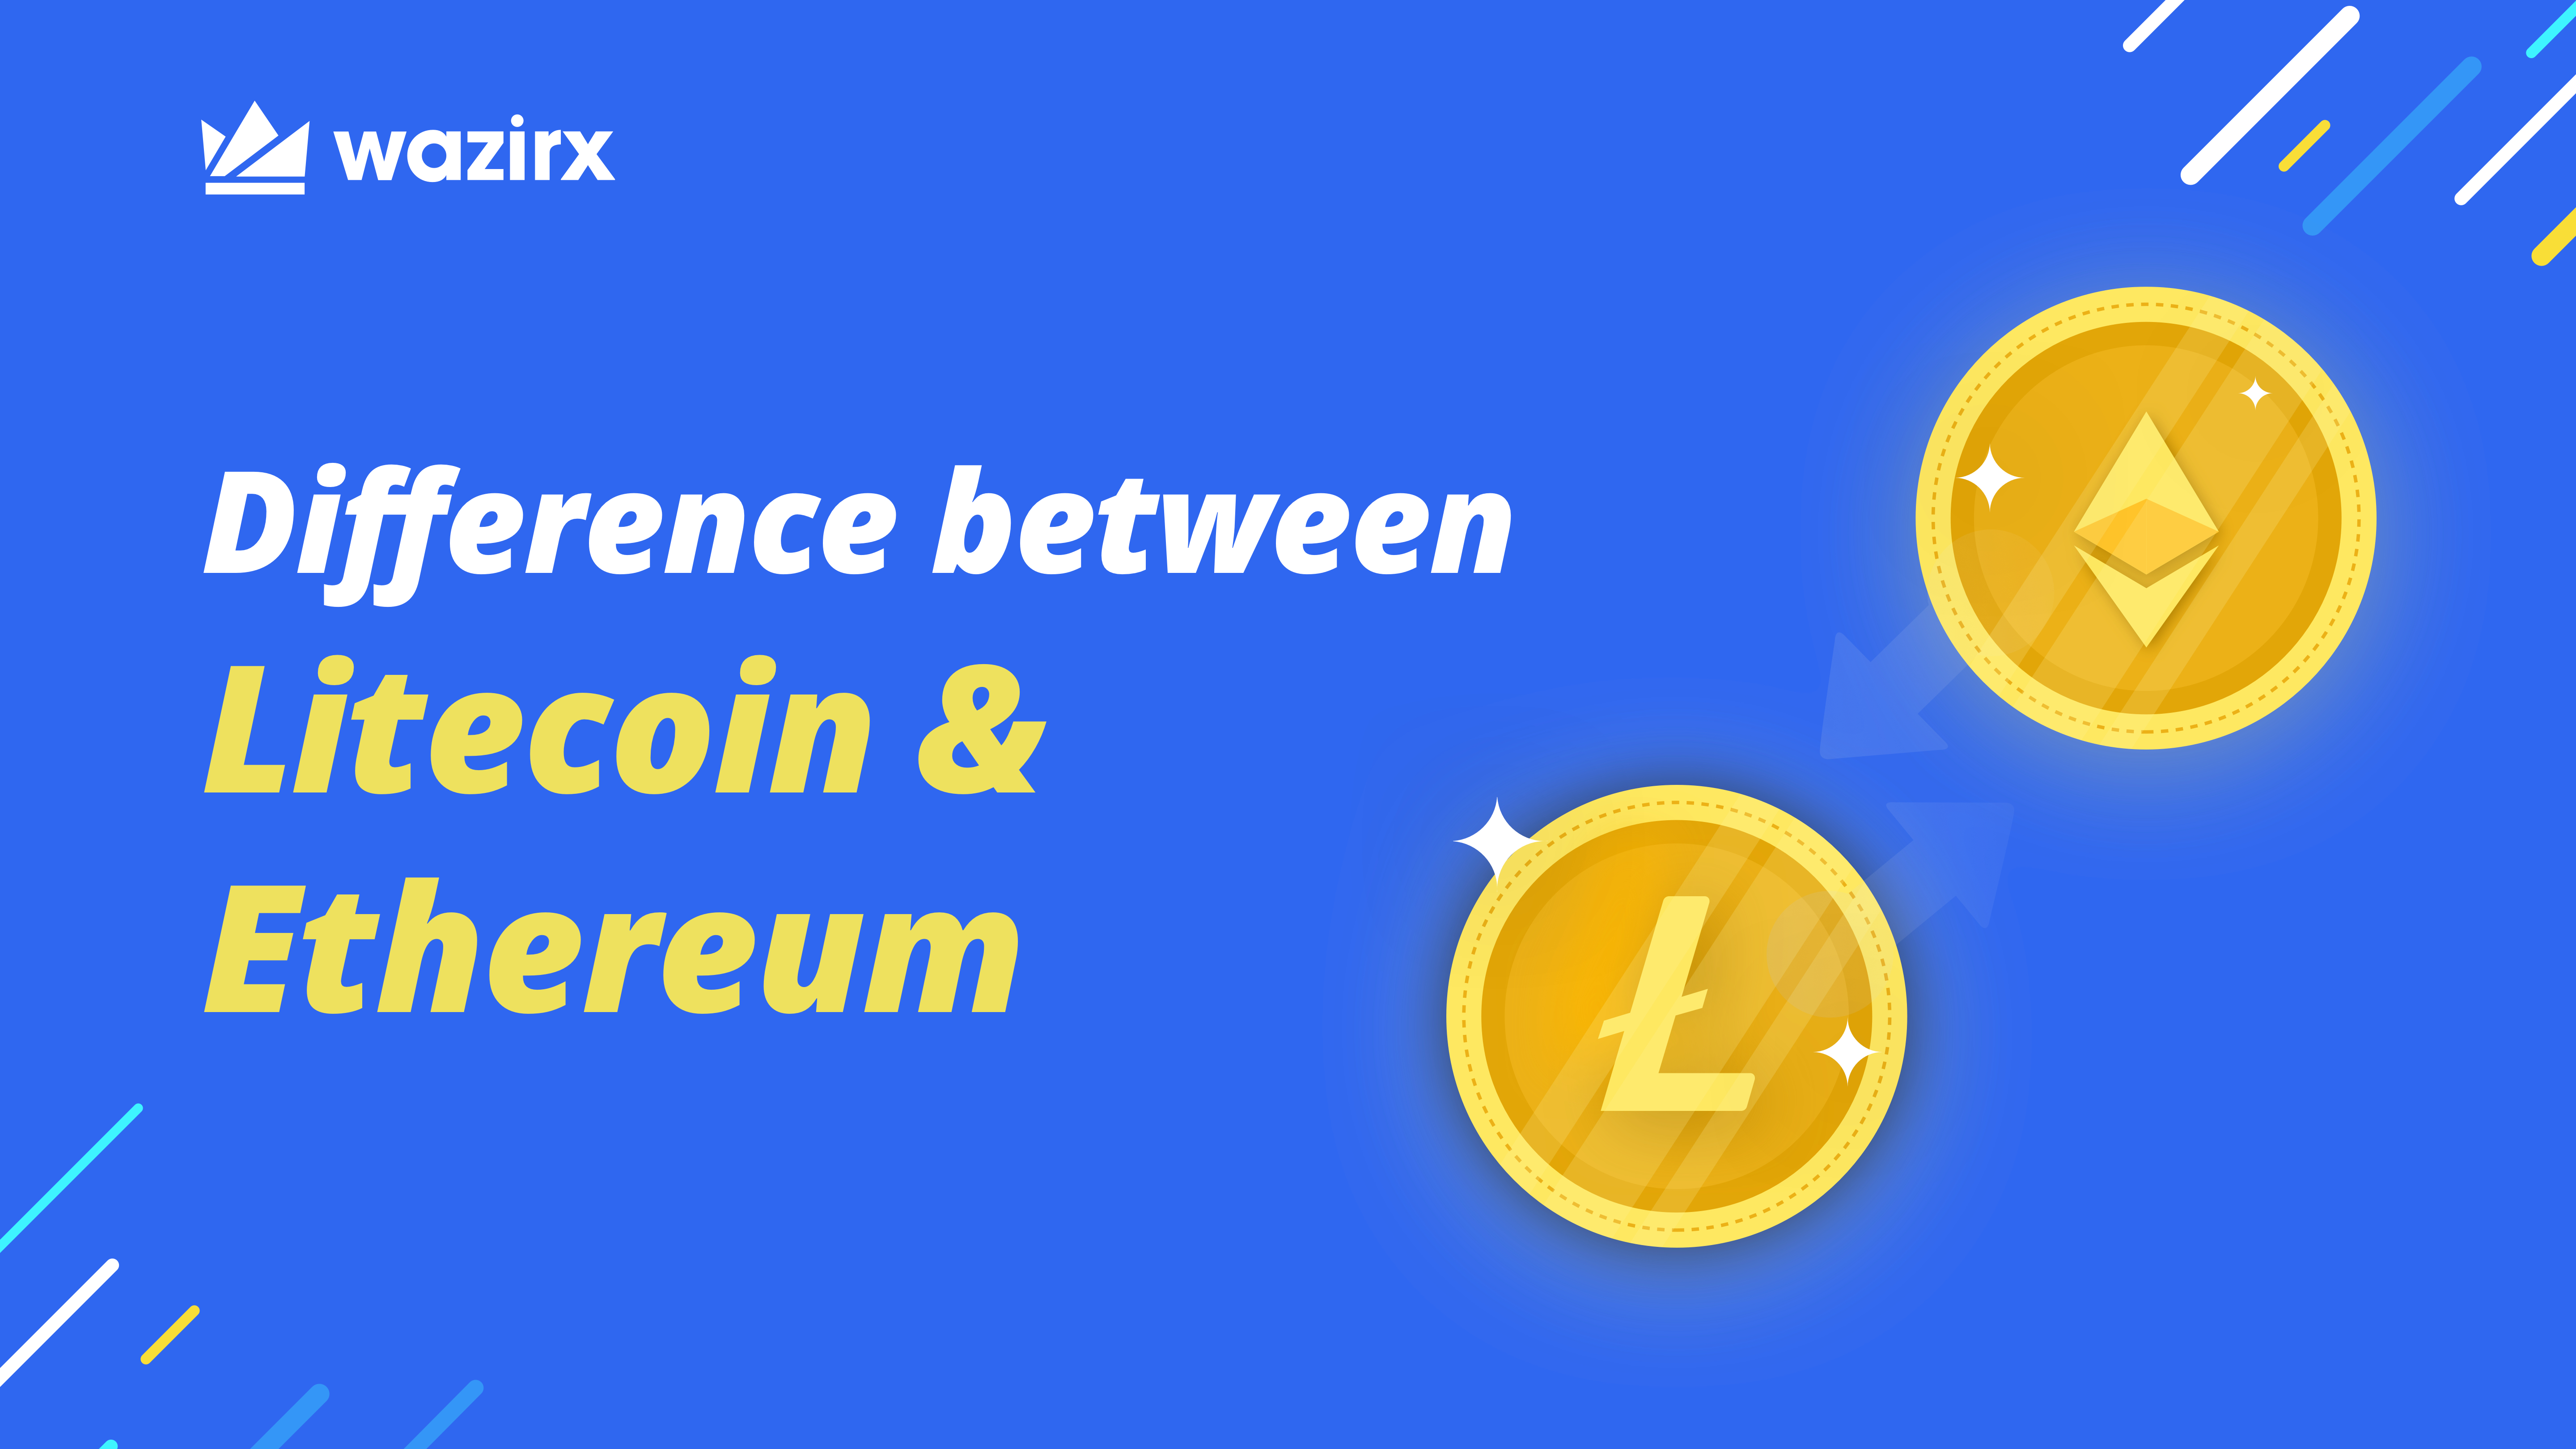 Difference between Litecoin and Ethereum - WazirX